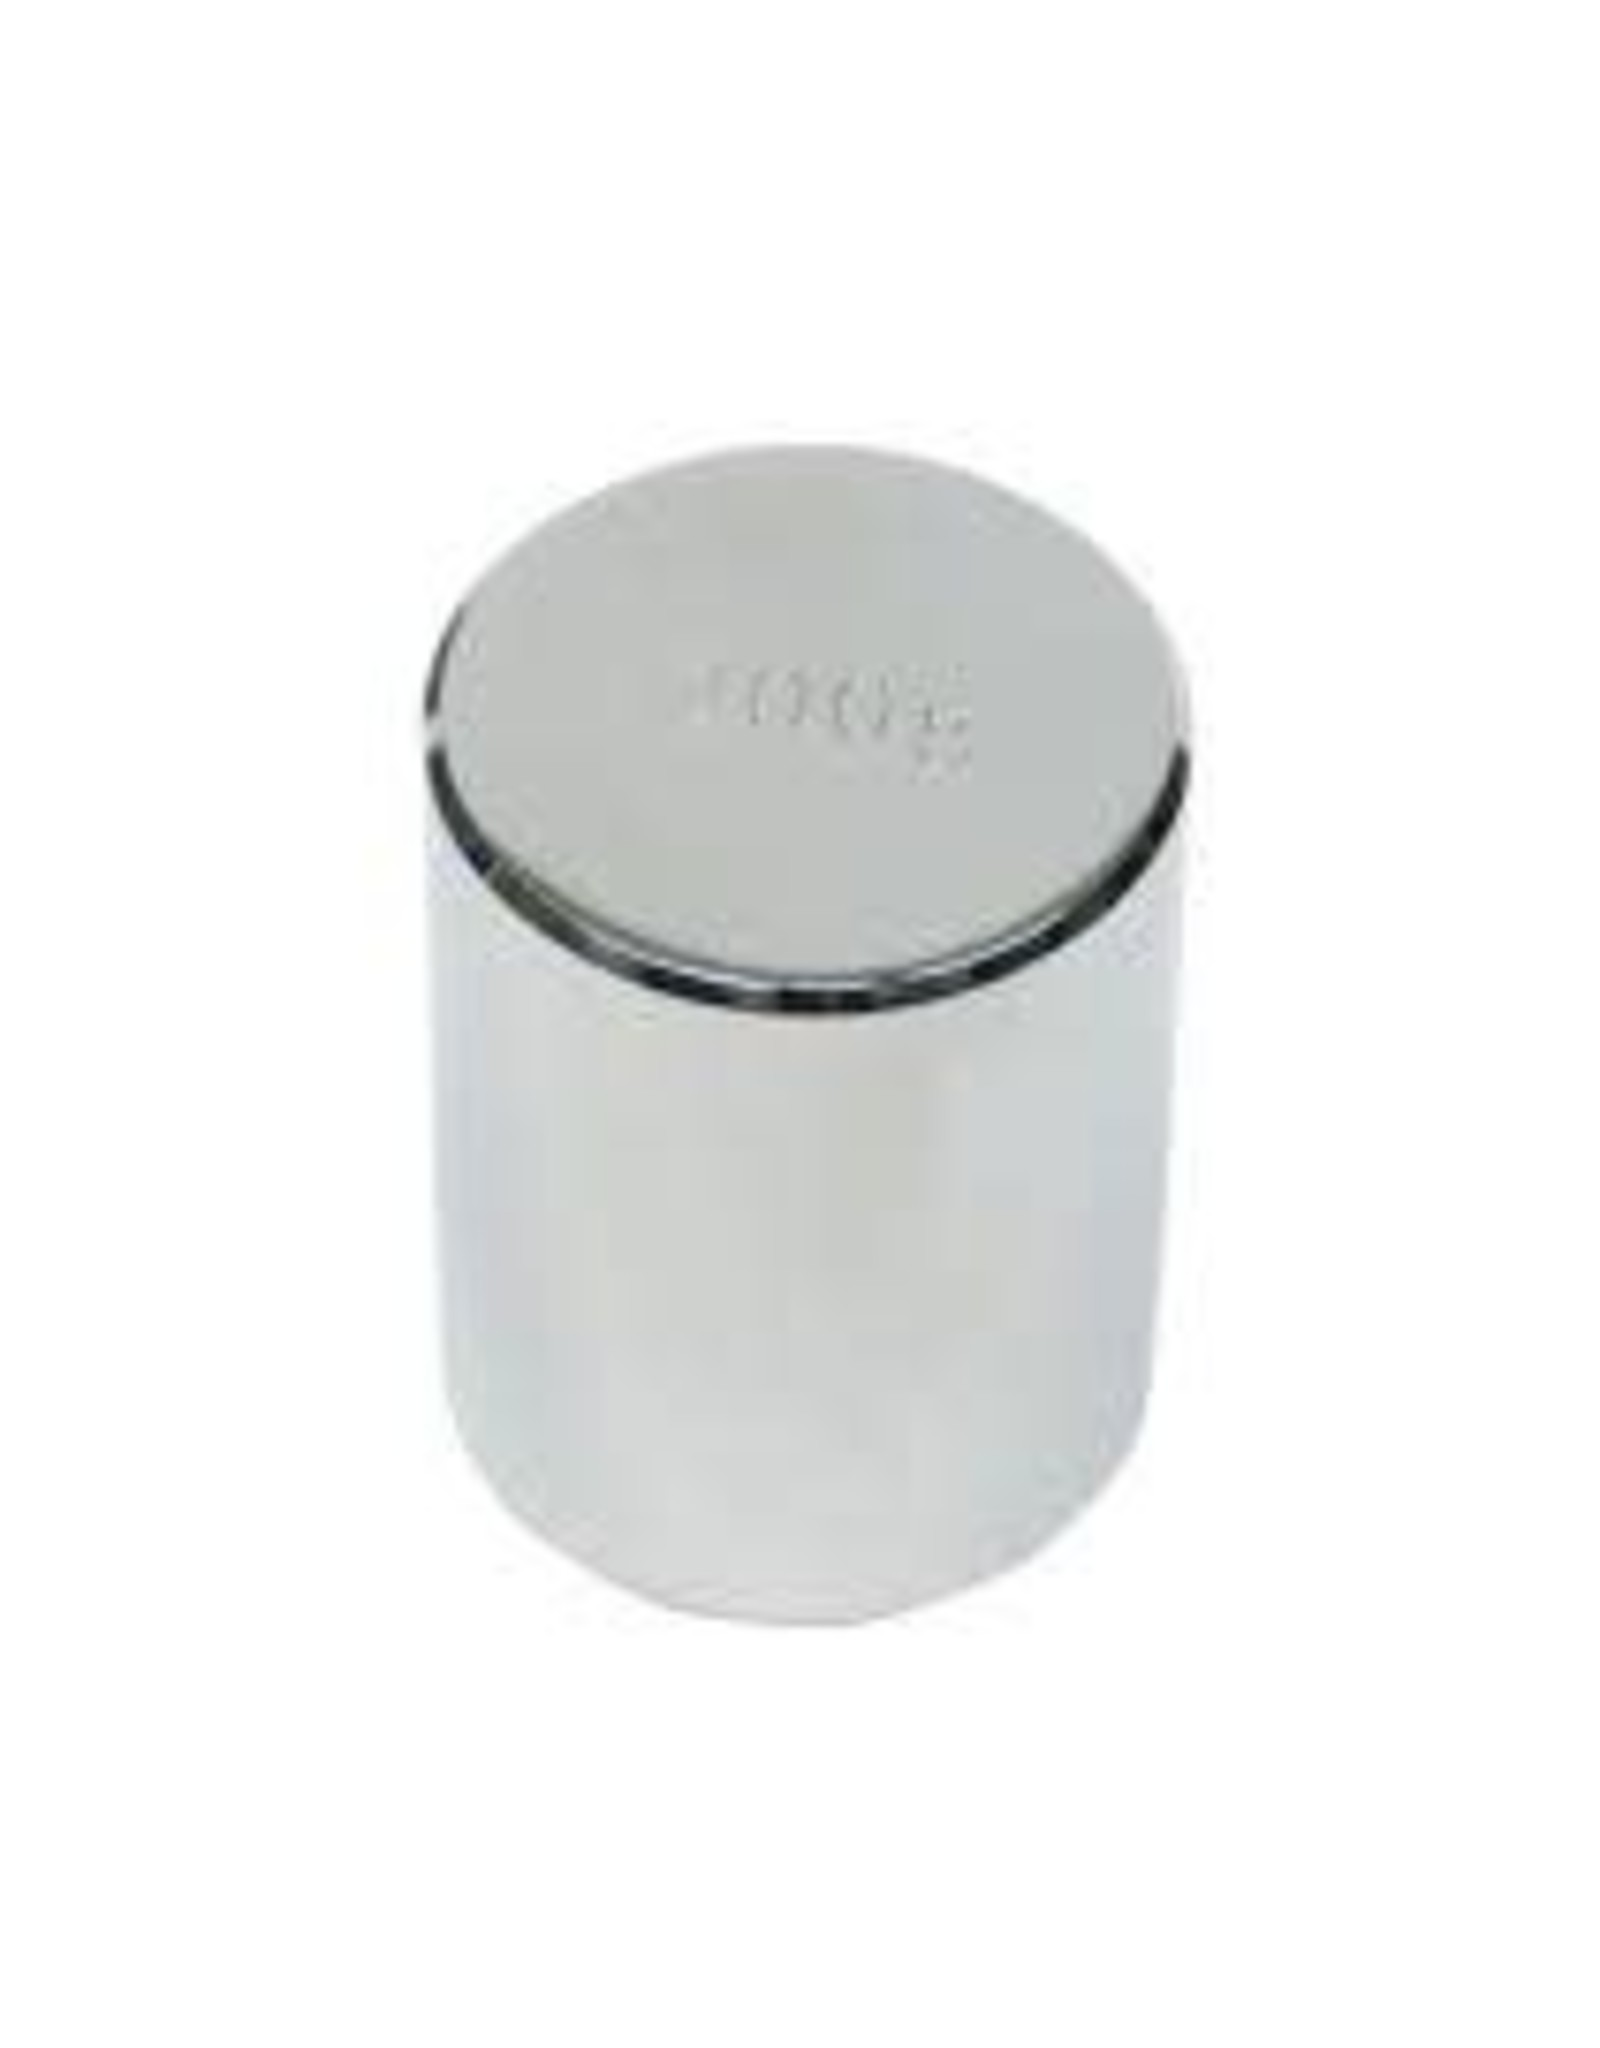 Truweight Calibration Weight - 200g